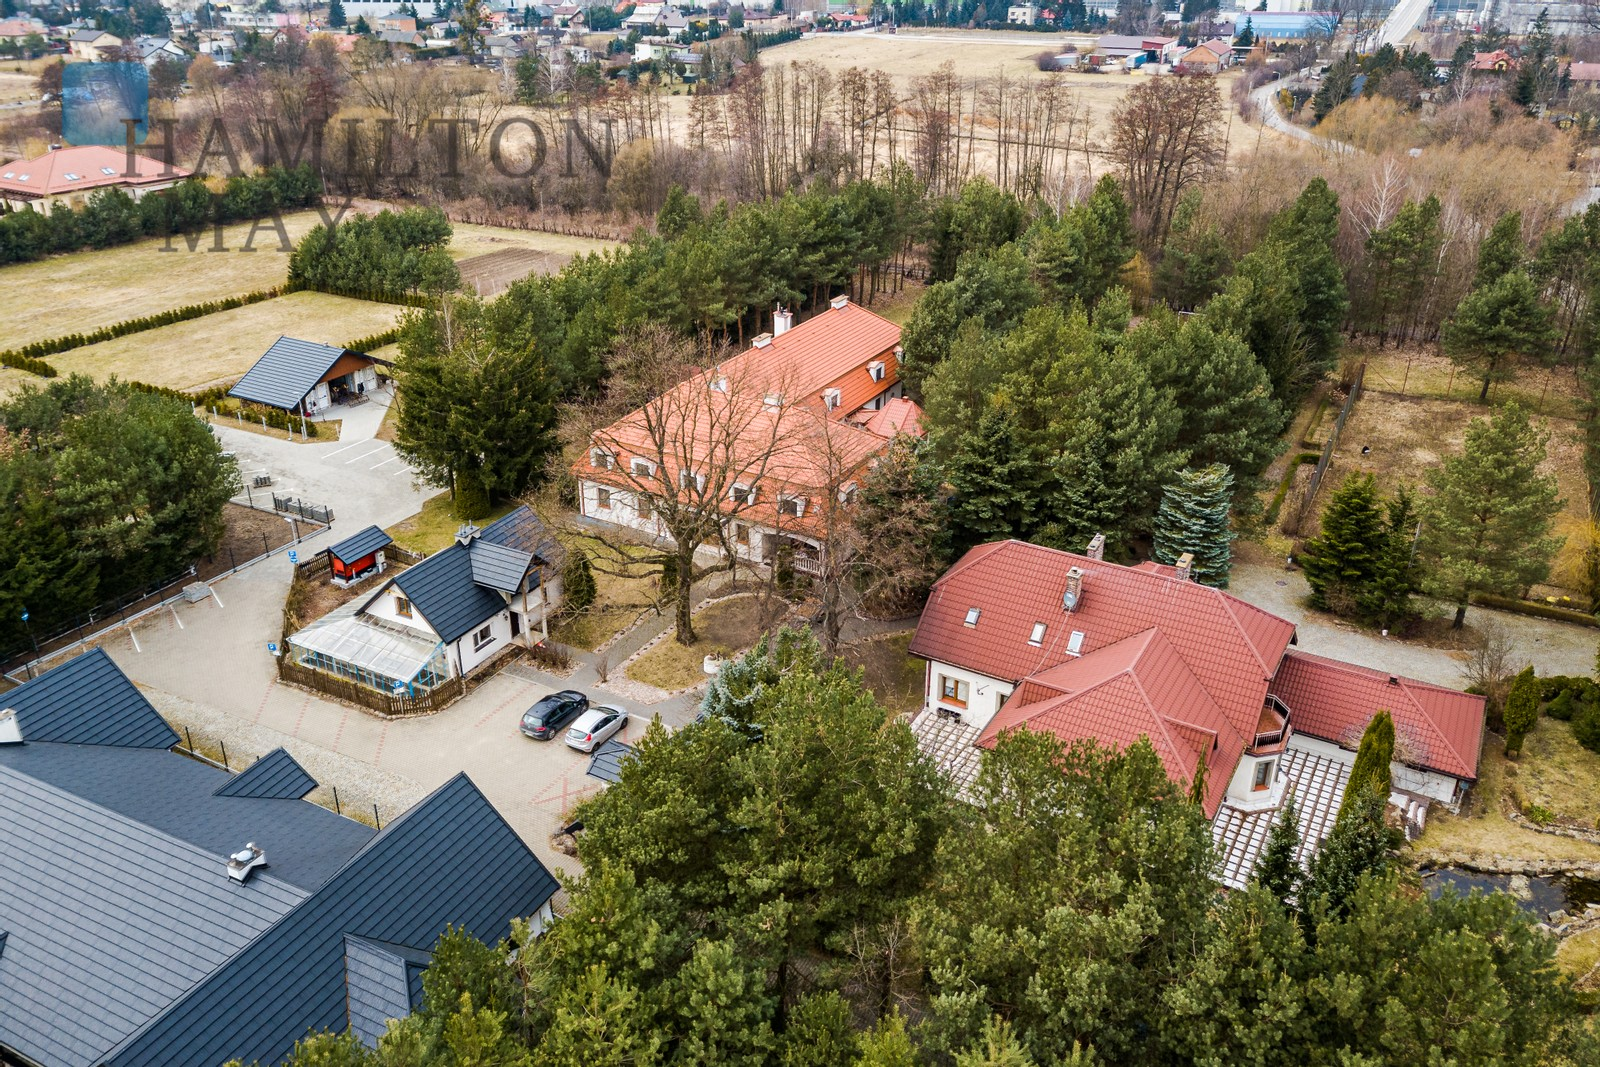 Pension for sale in Rusiec, 25 minutes from the center of Warsaw Warsaw for sale